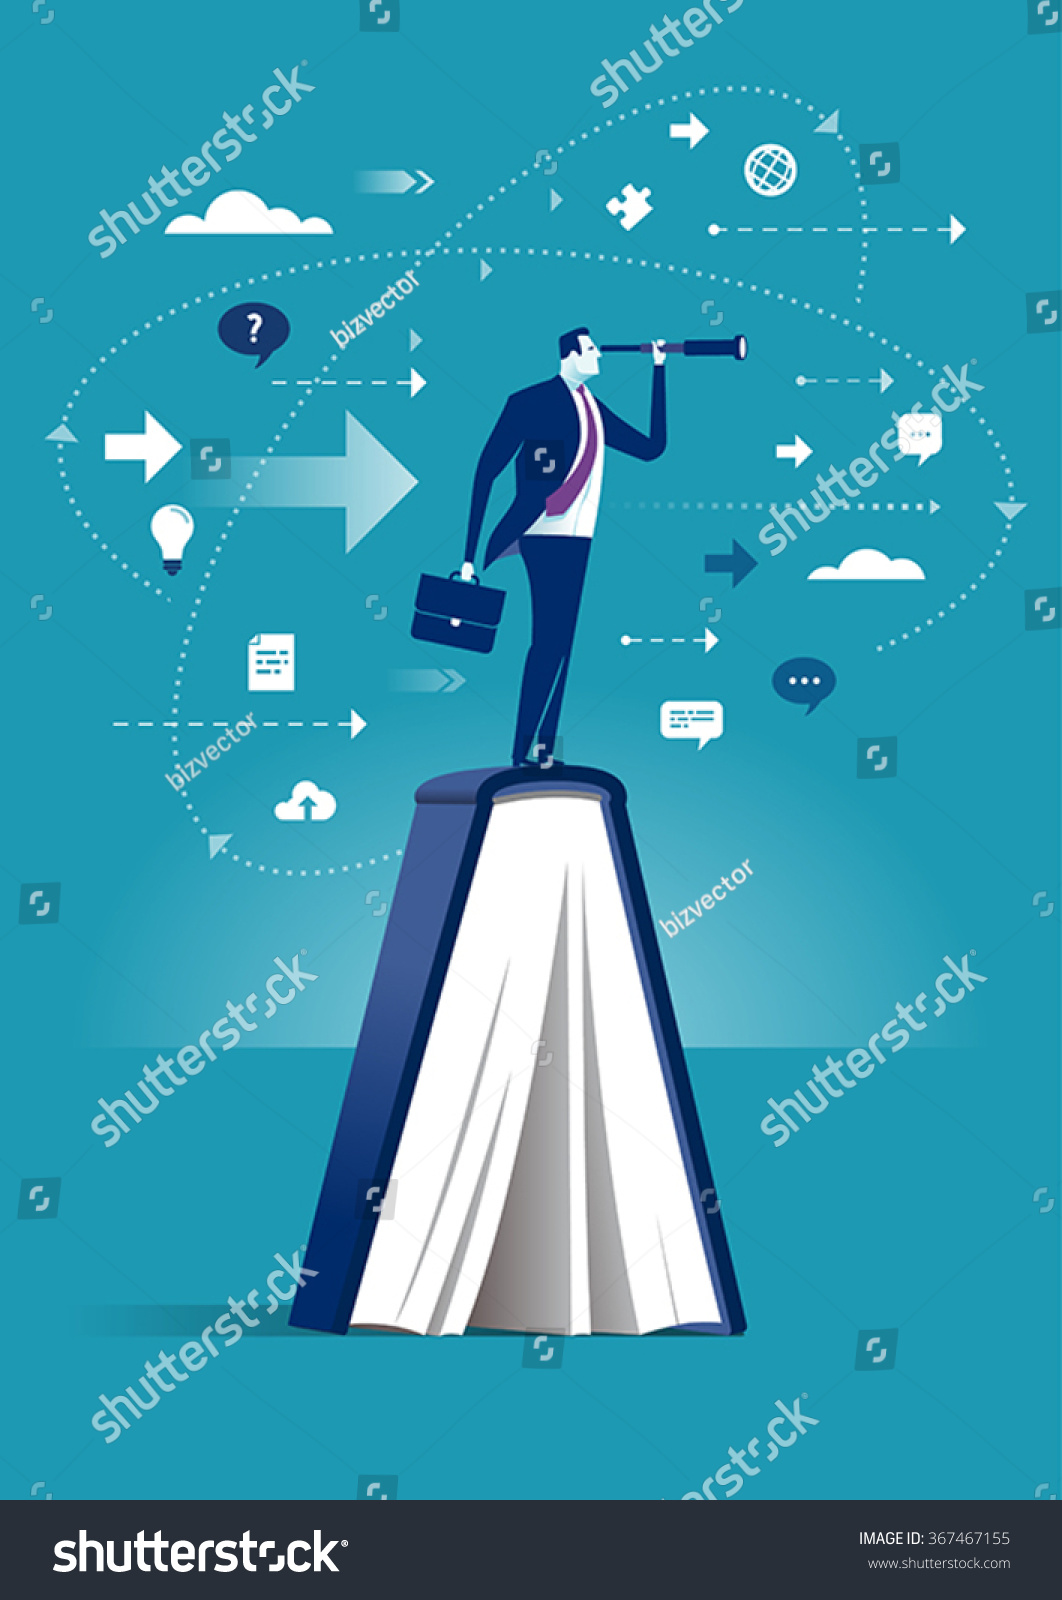 Knowledge Concept Business Illustration Stock Vector ...